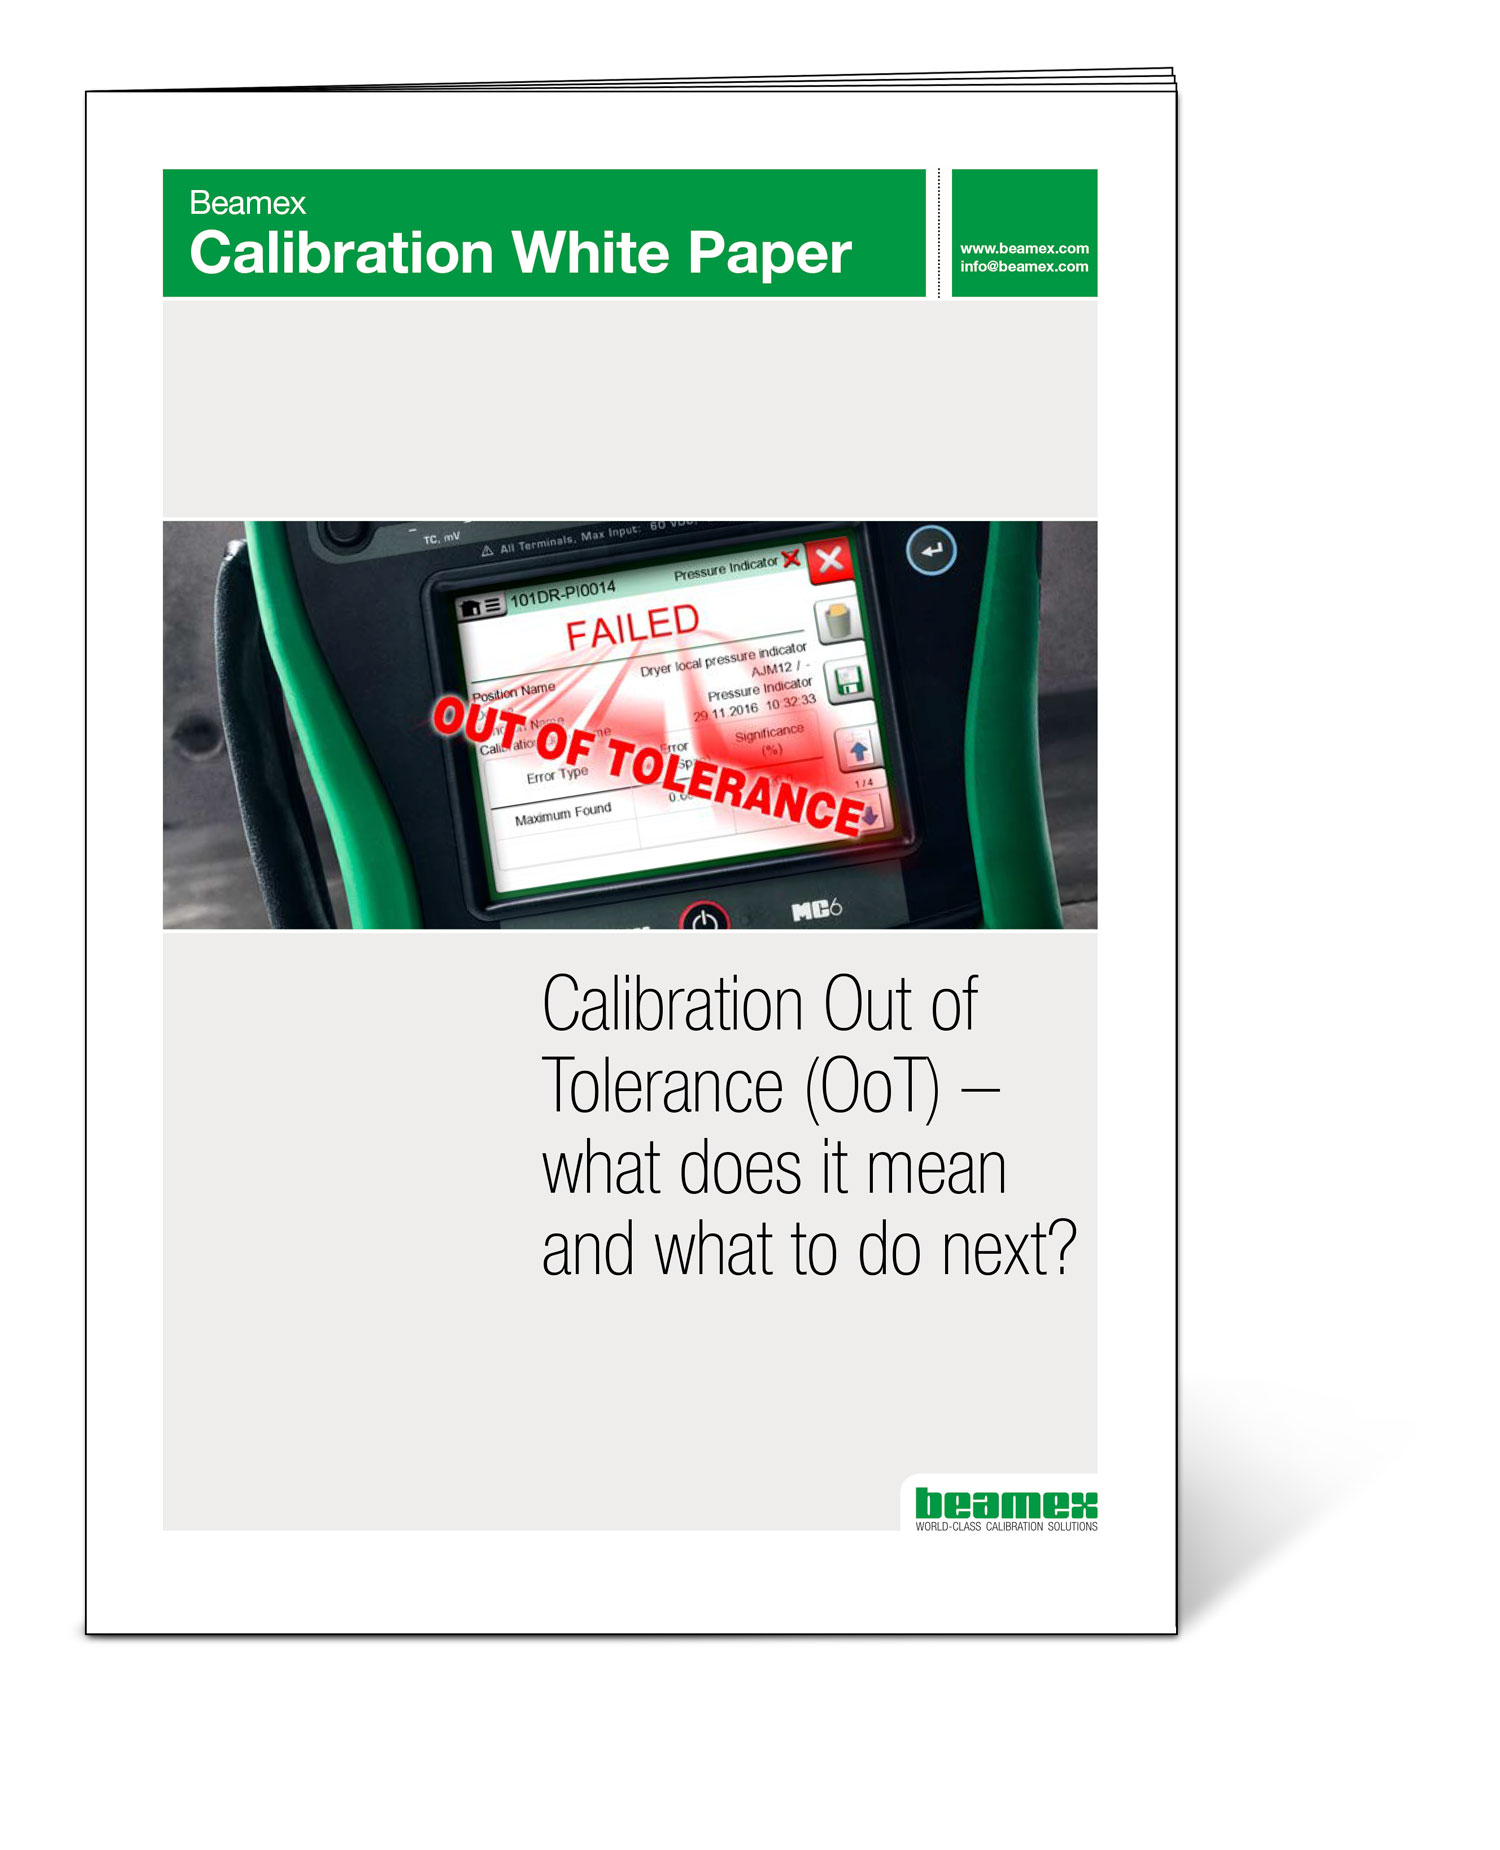 calibration-out-of-tolerance-Beamex-WP-1500px-v1.jpg